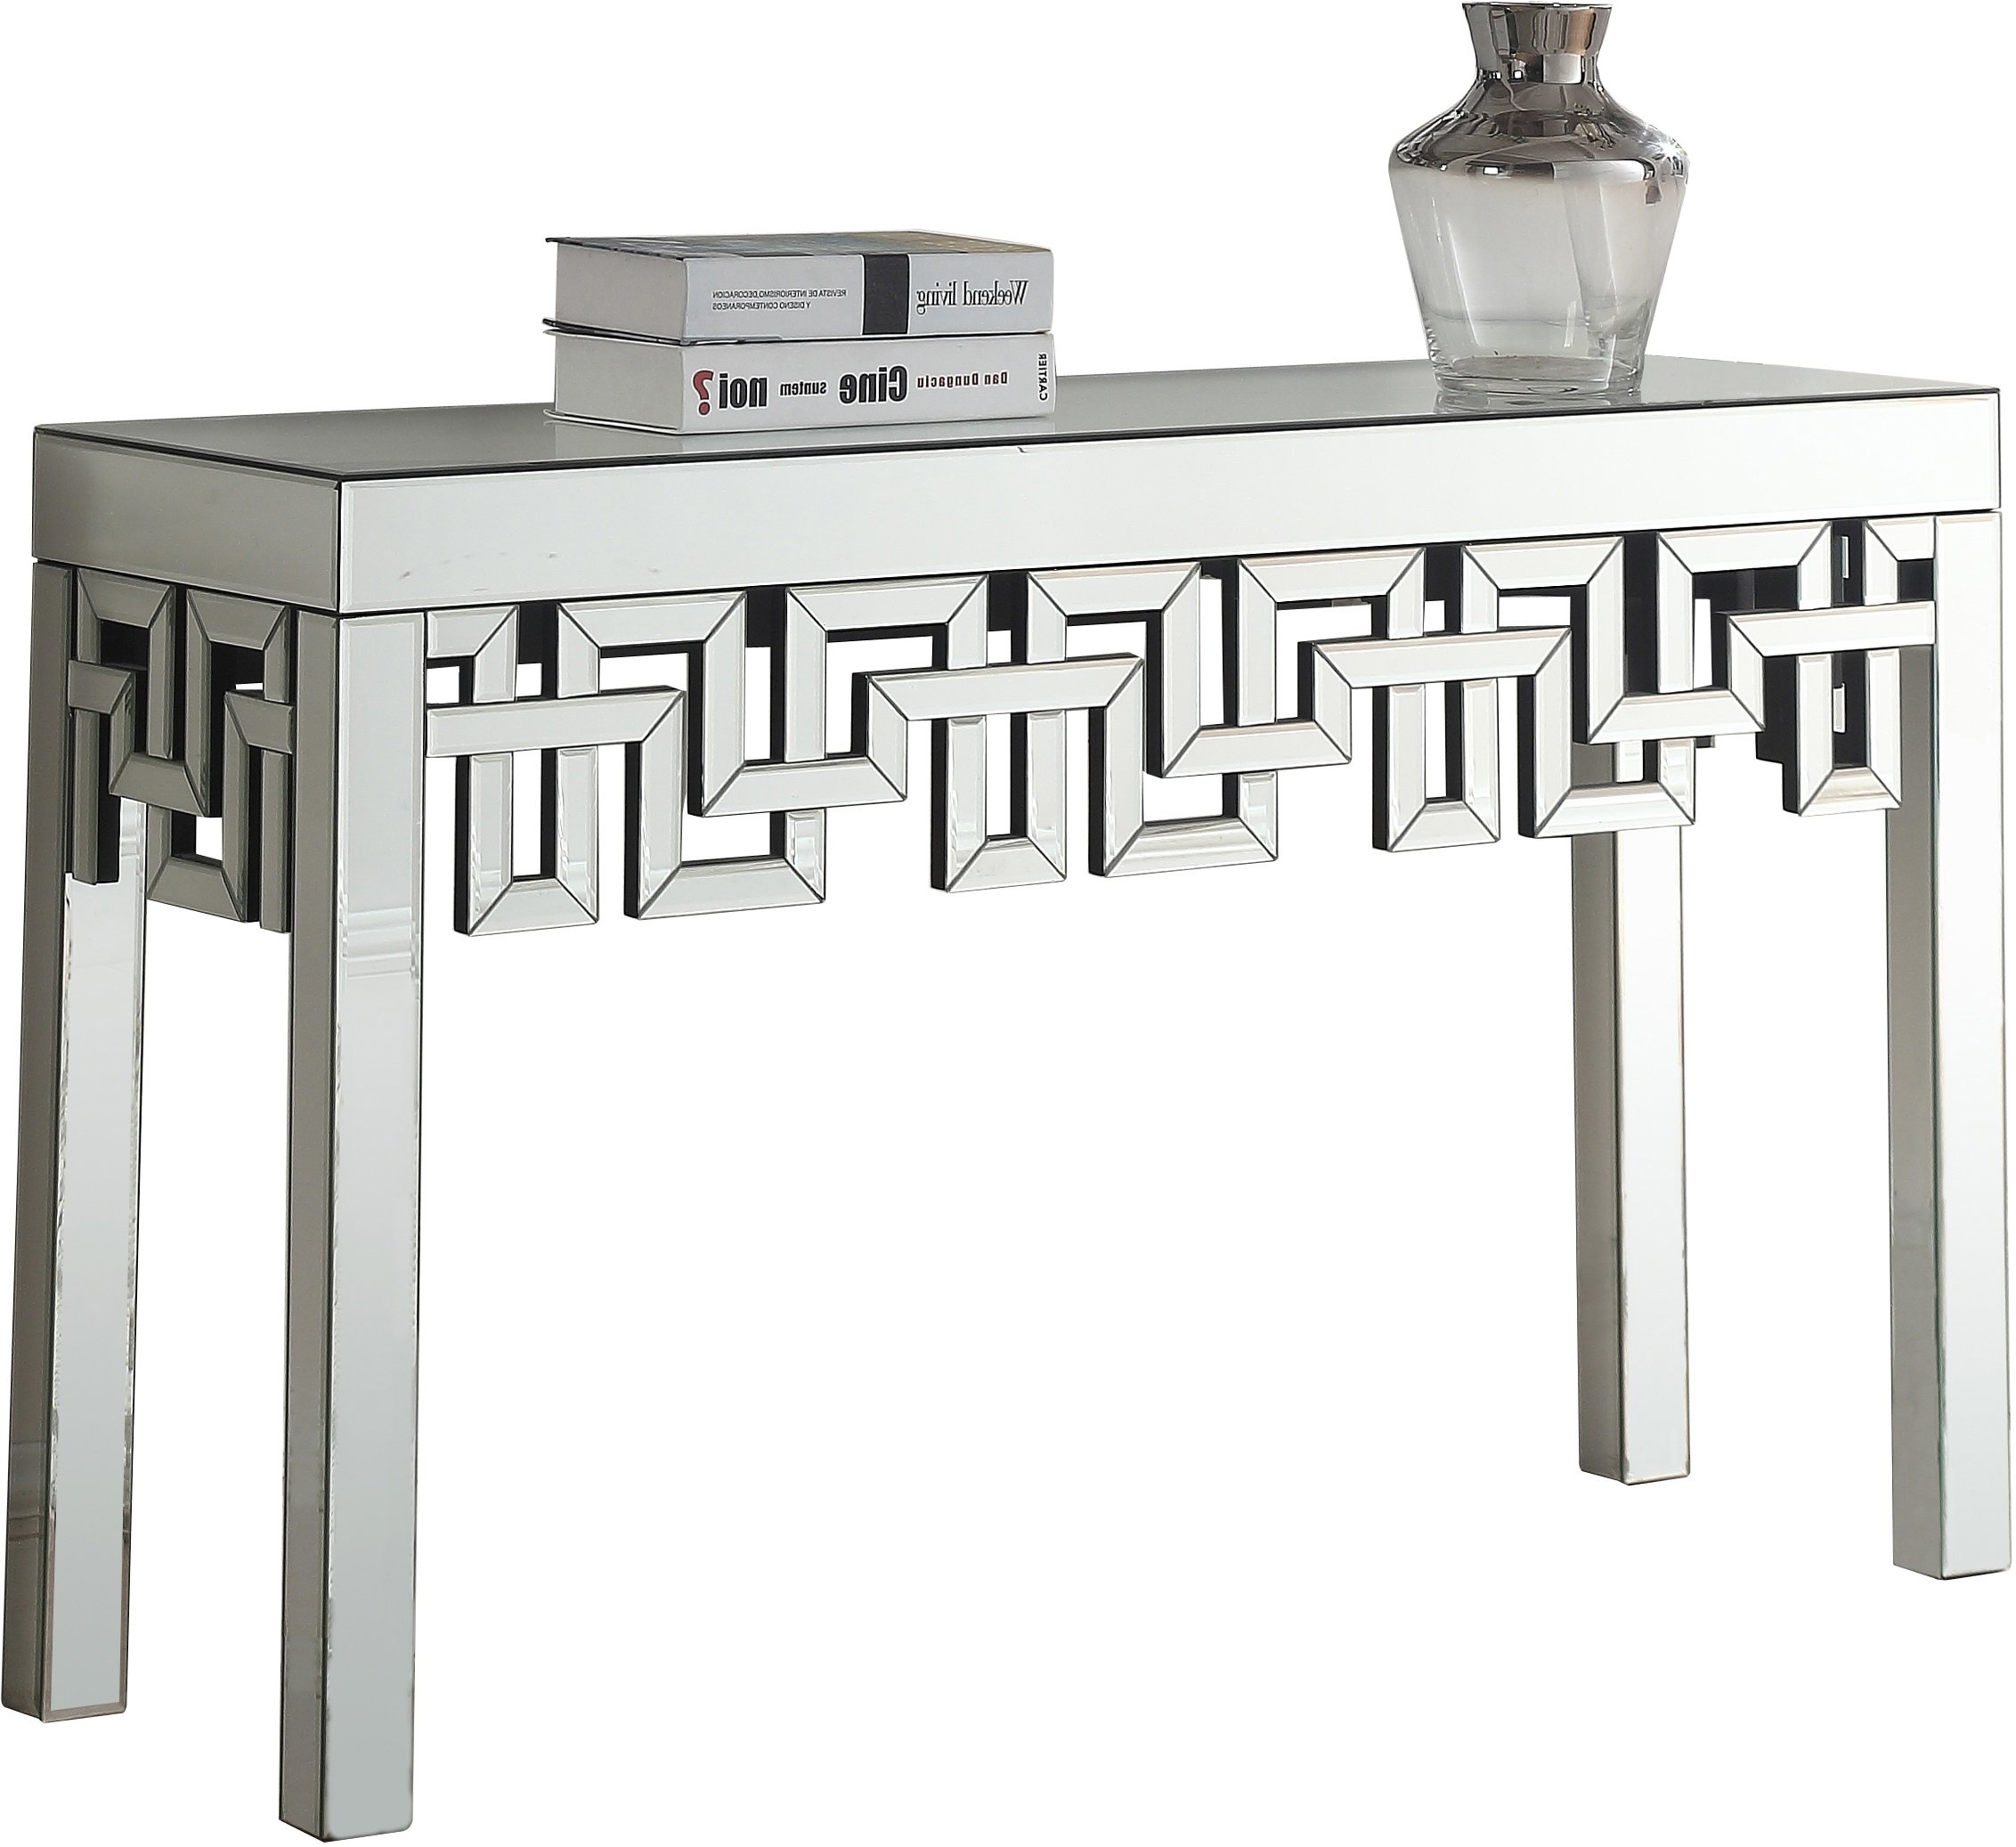 Meridian Furniture Aria Collection Modern | Contemporary Mirrored Console Table, 48'' W x 15.5'' D x 30'' H, by Meridian Furniture